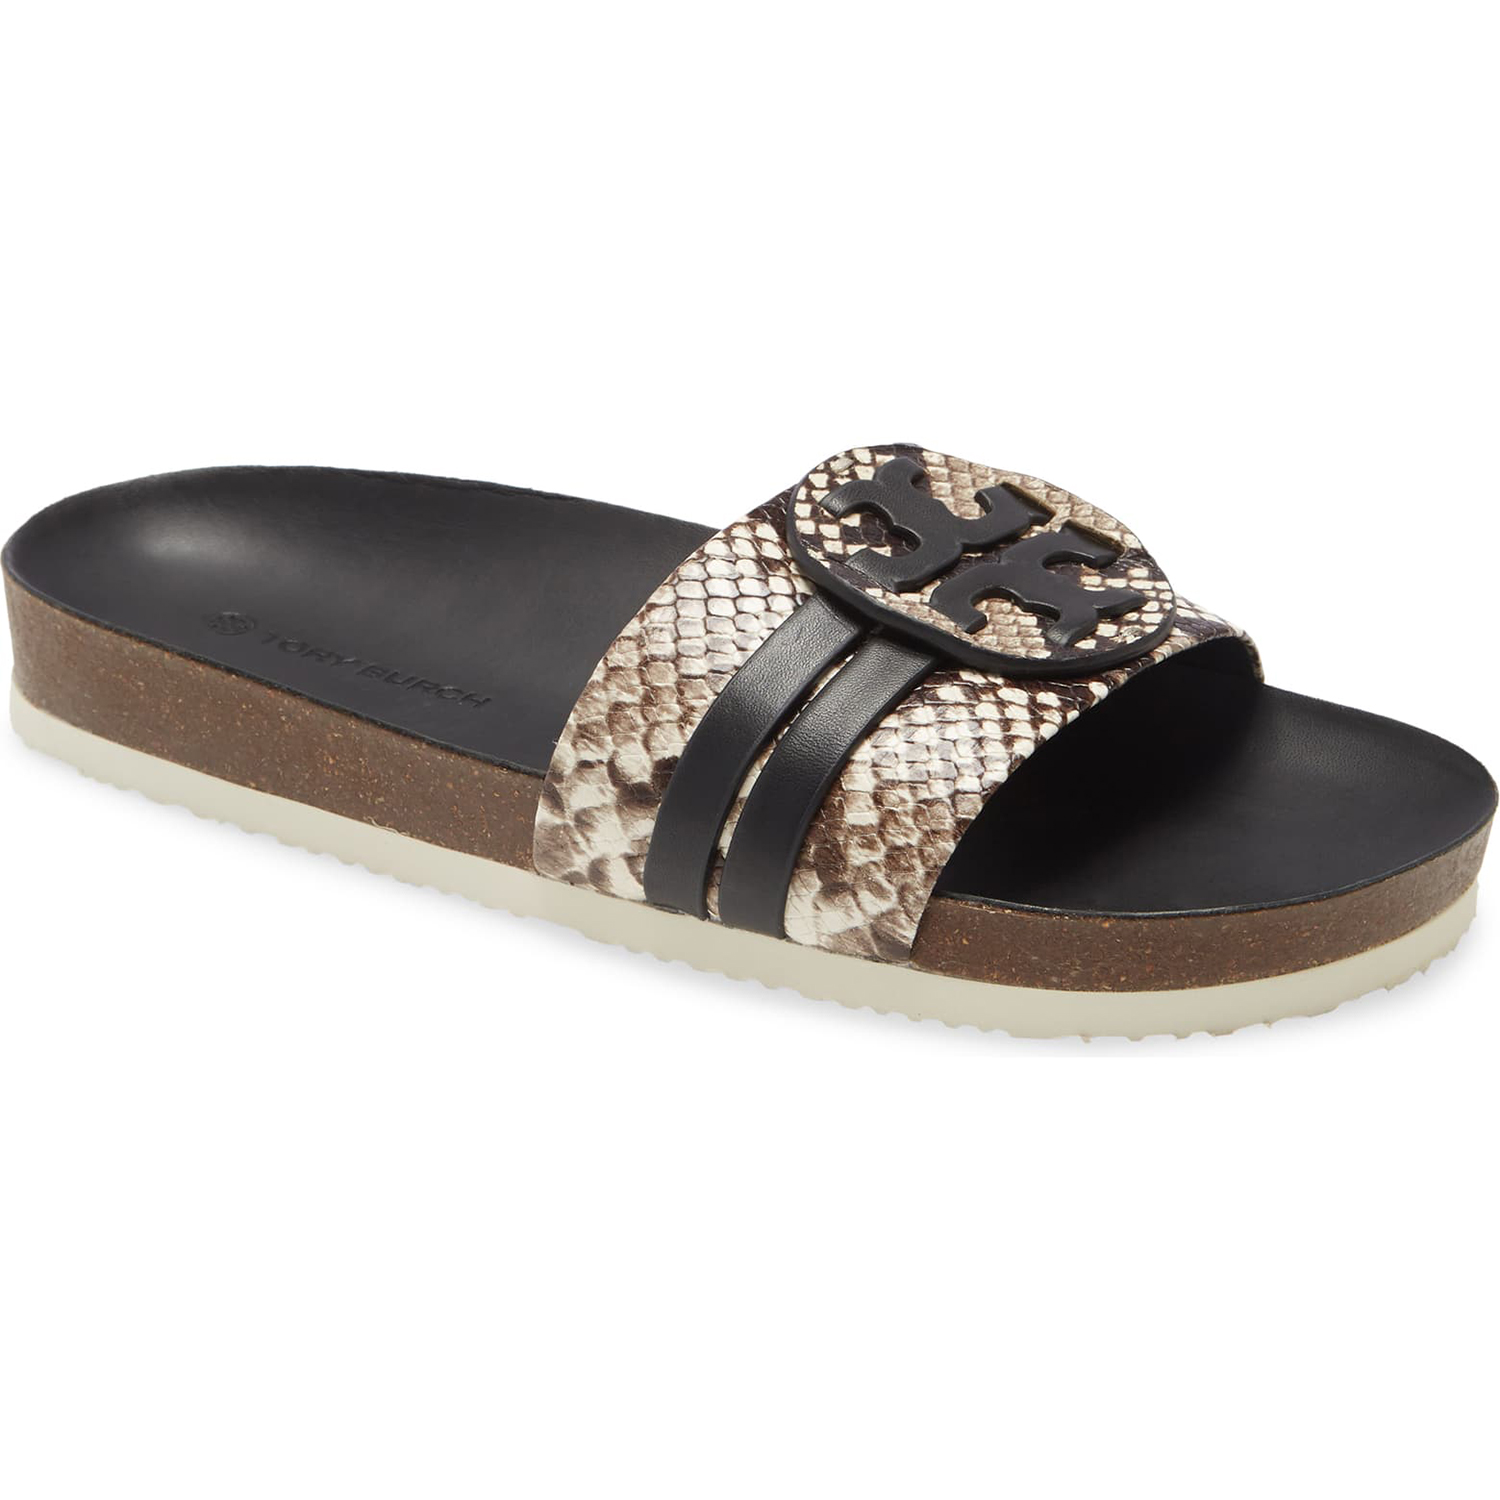 Tory Burch on Nordstrom